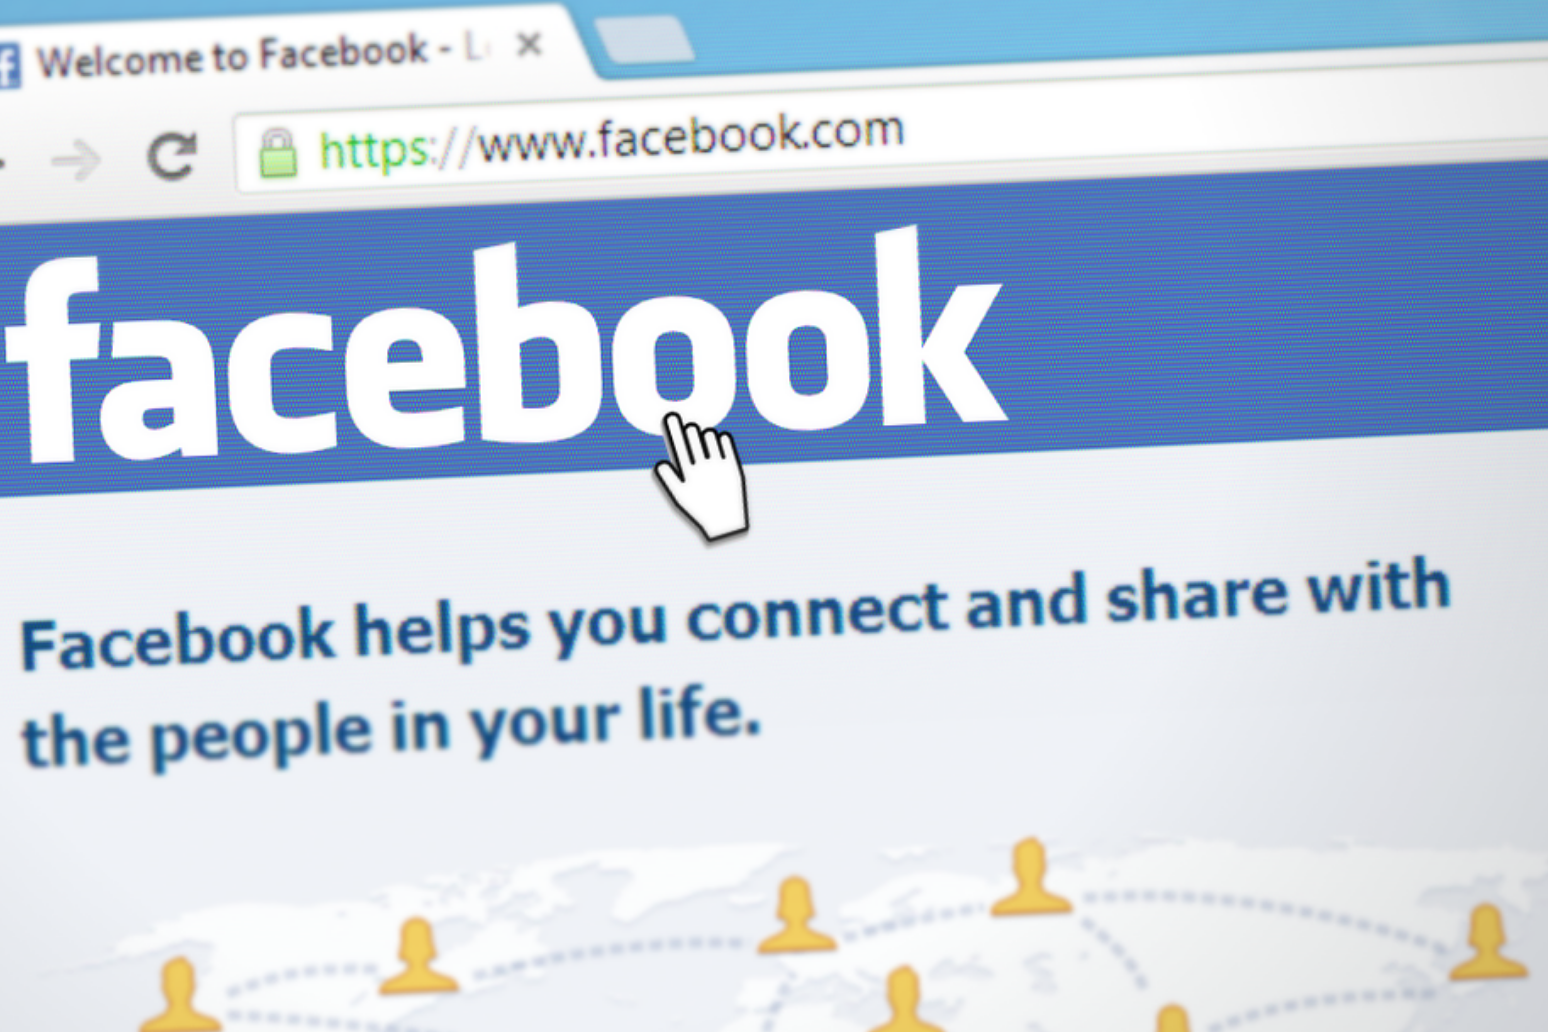 Facebook denies claims over data access